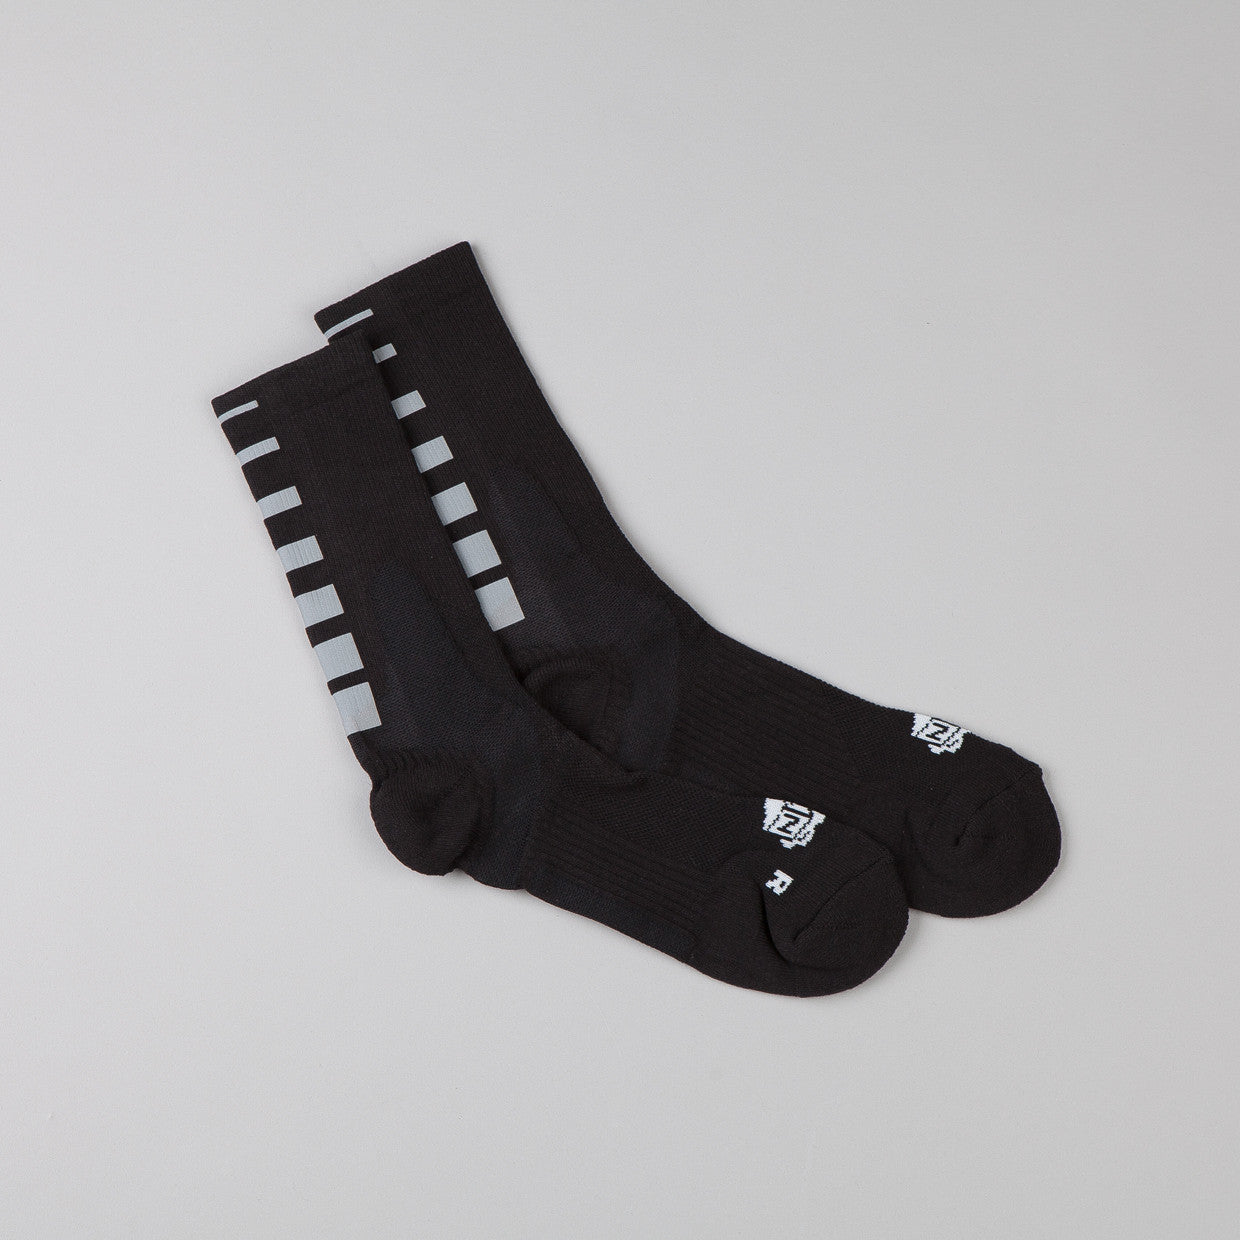 ICNY Half Calf Gradient Socks Black